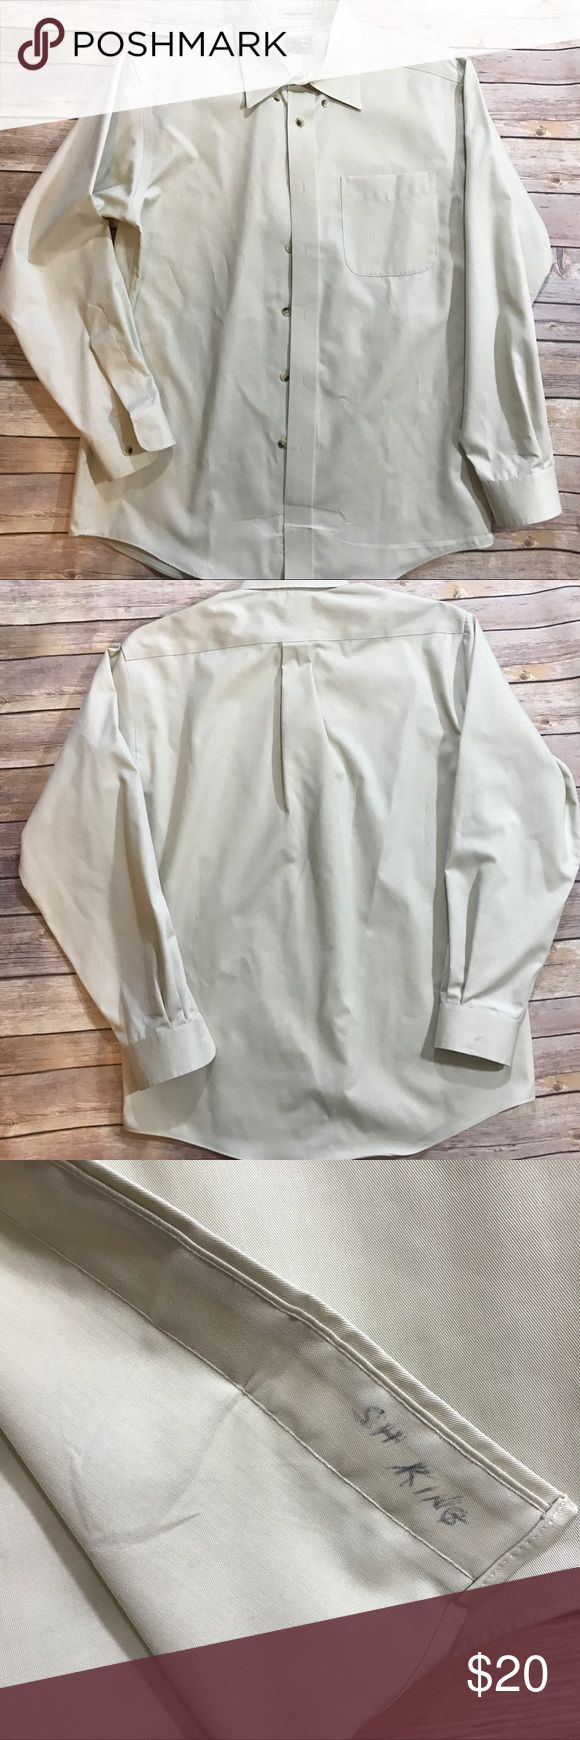 LL Bean Men's dress shirt LL Bean shirt. Very good condition. Name written inside, as shown, from cleaners. Wrinkle resistant fabric. Size: 15.5-32. Off white. L.L. Bean Shirts Dress Shirts